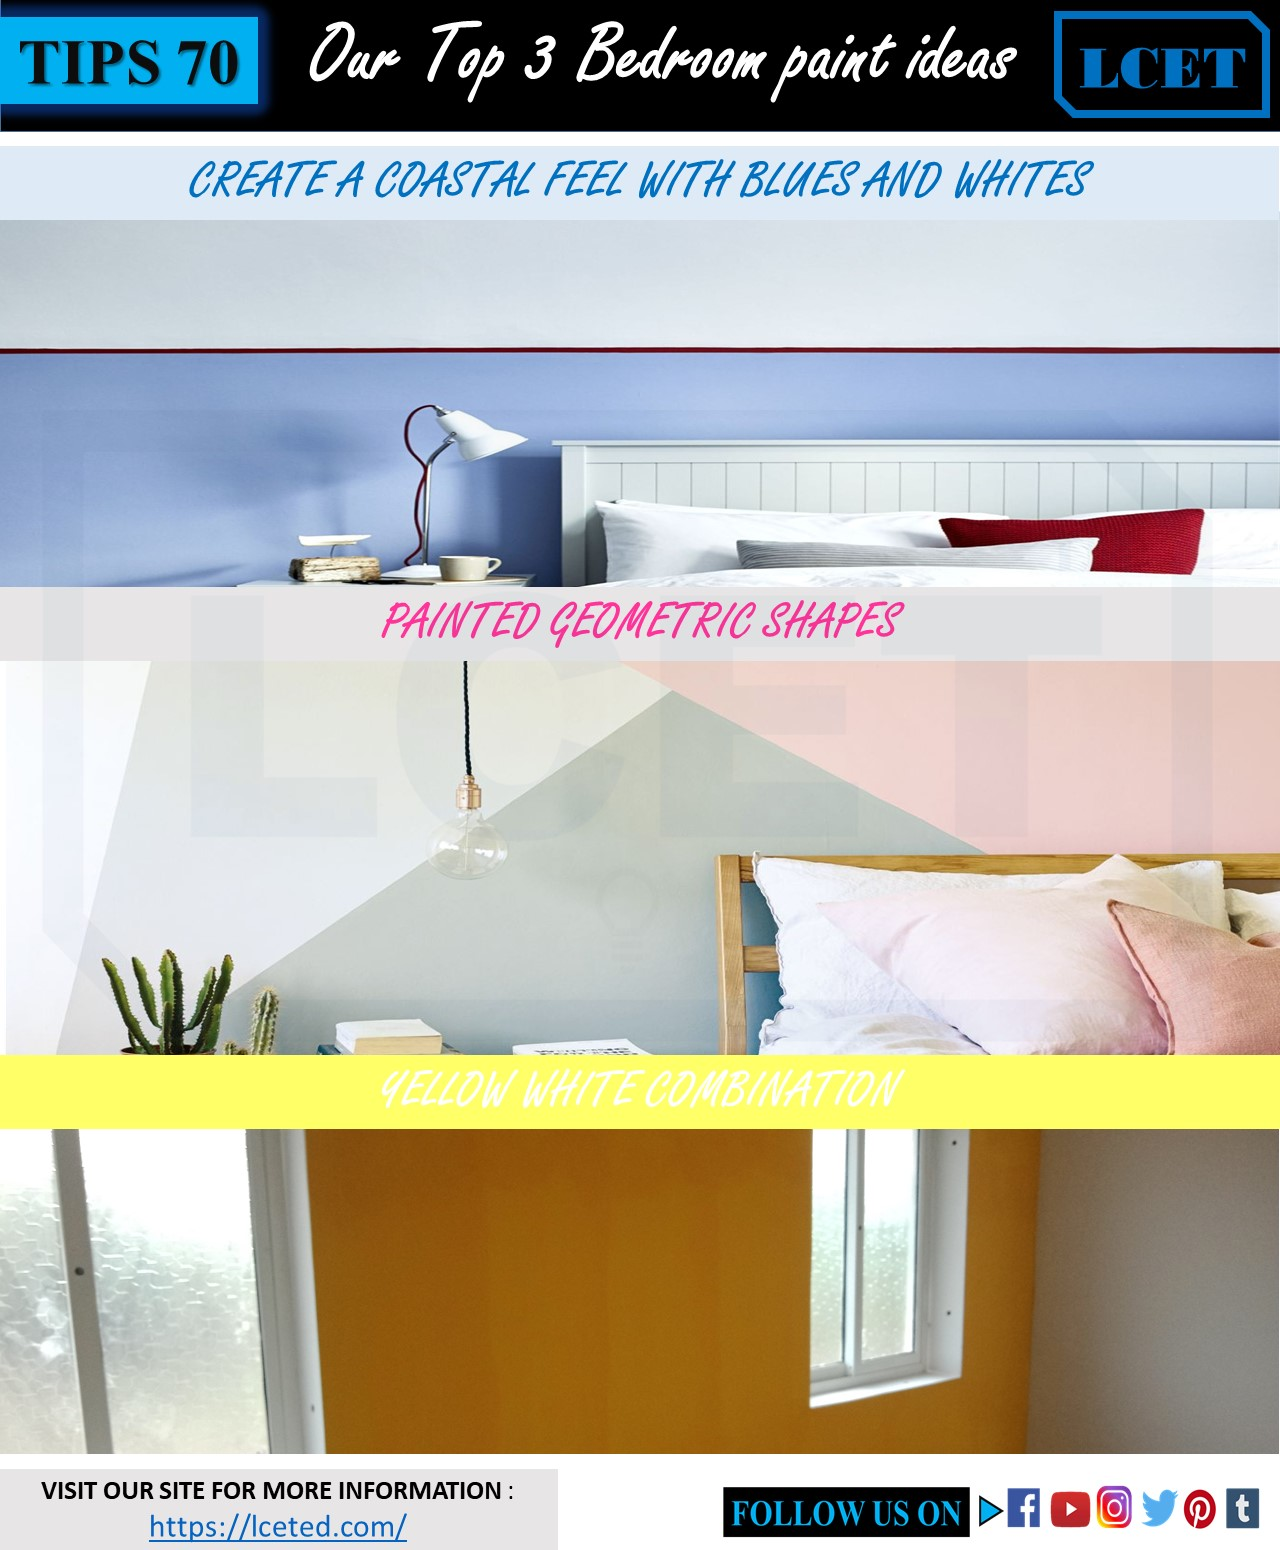 KNOW ABOUT BEDROOM PAINTING